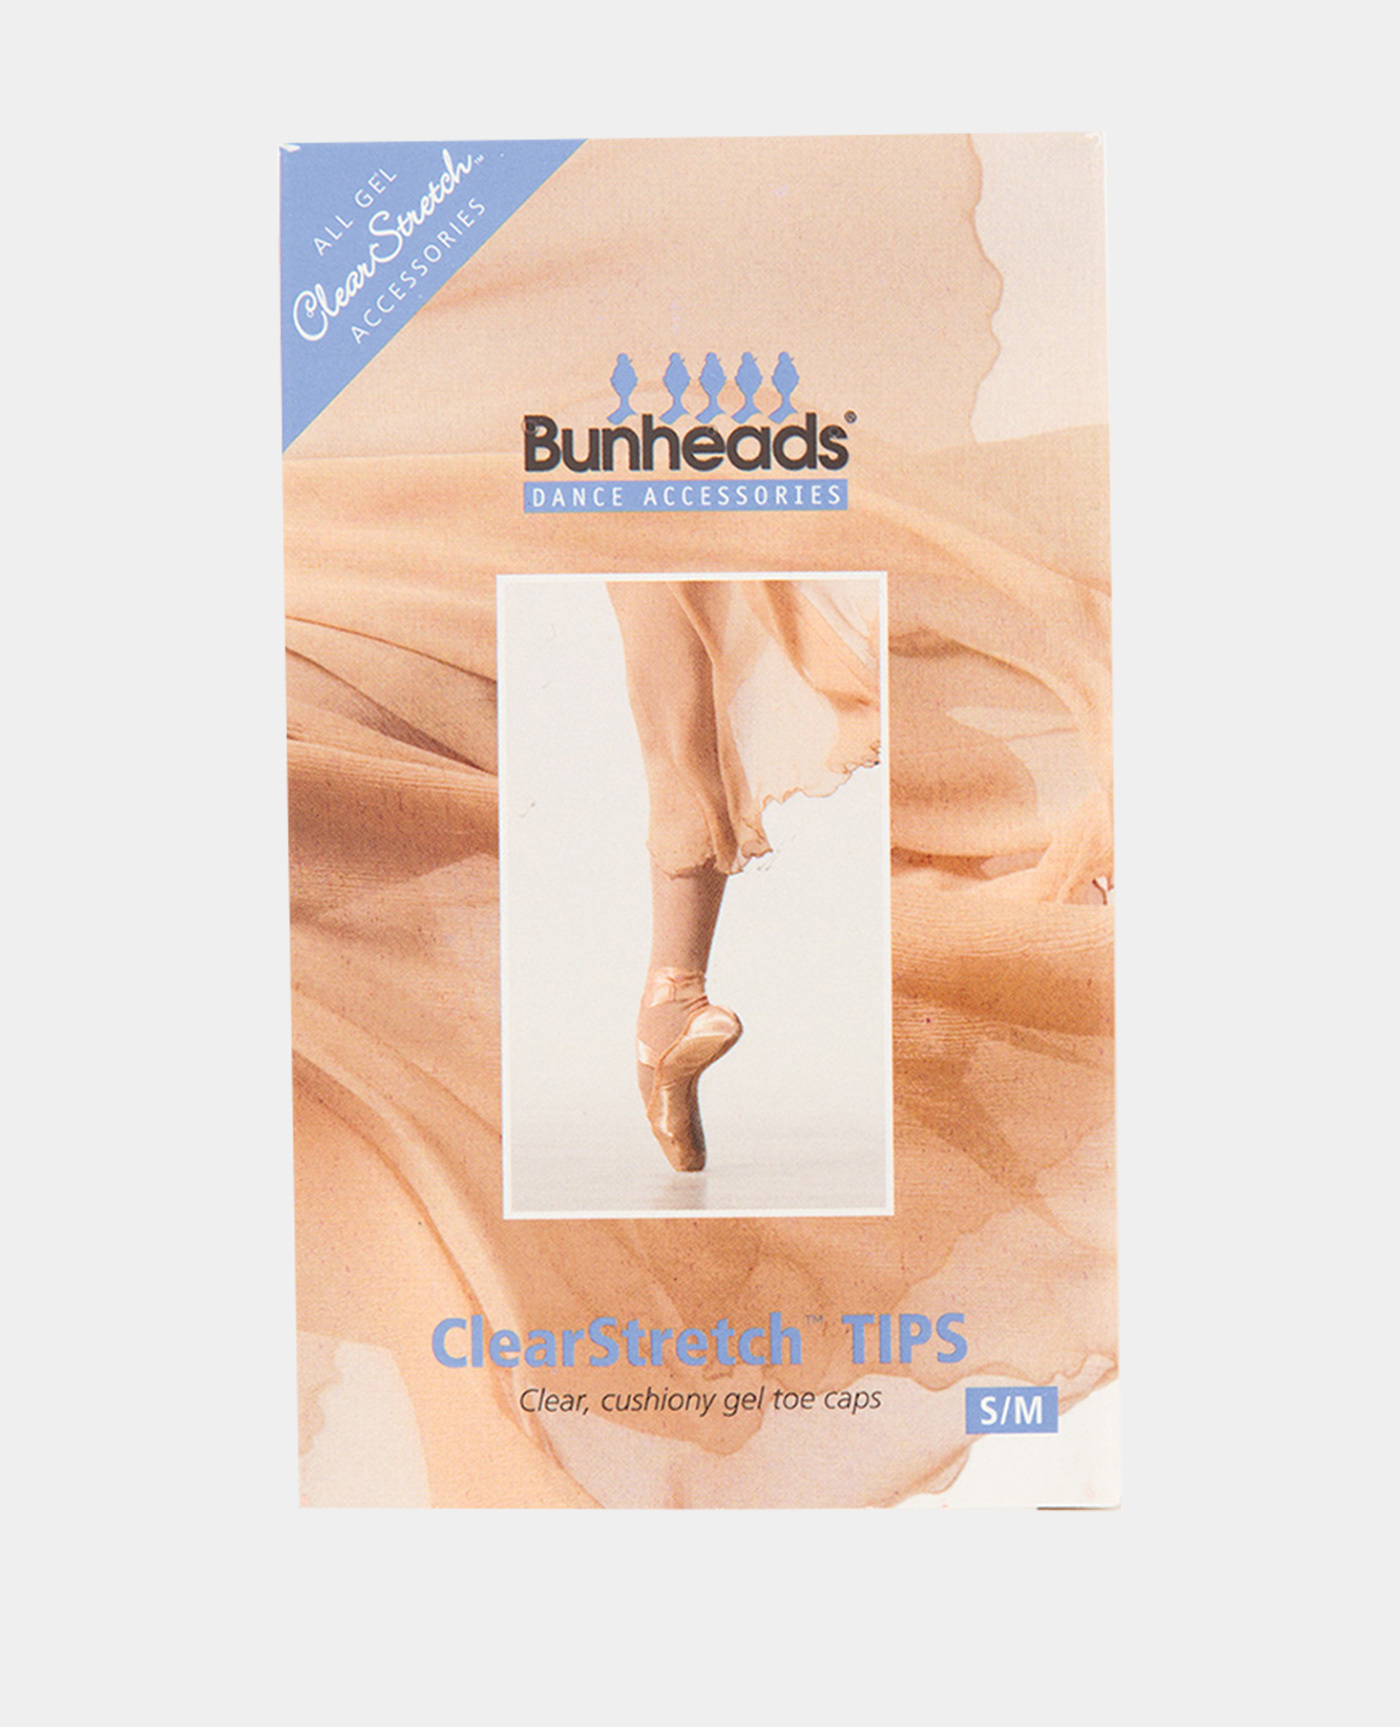 BUNHEAD CLEARSTRECH GEL TOE TIPS S/M FOR POINTE SHOES (BH150U)